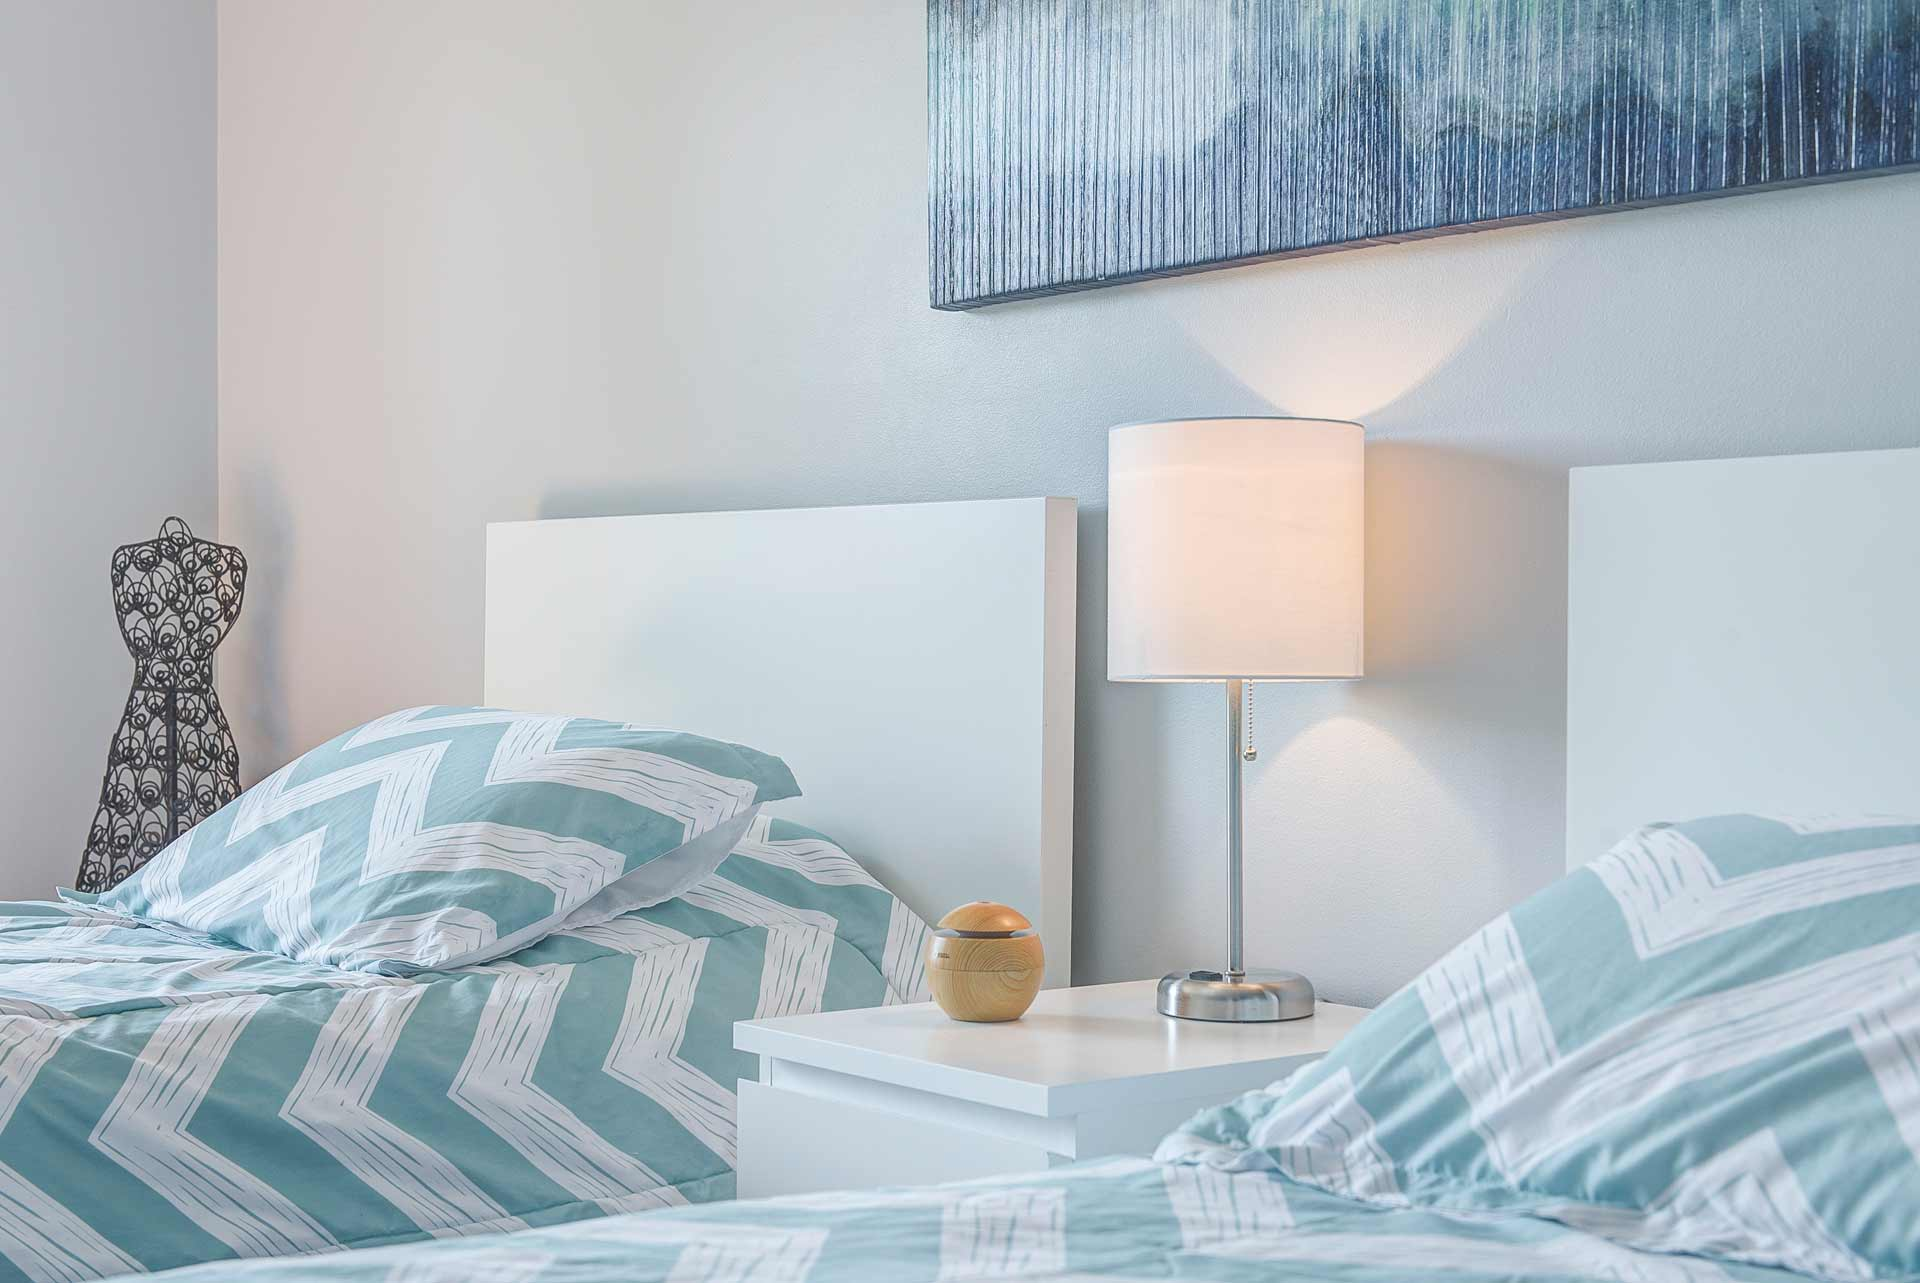 Kid Bedroom - Reef Court Light Renovation - Geist Reservoir - Indianapolis, IN - Photo by Structured Photography